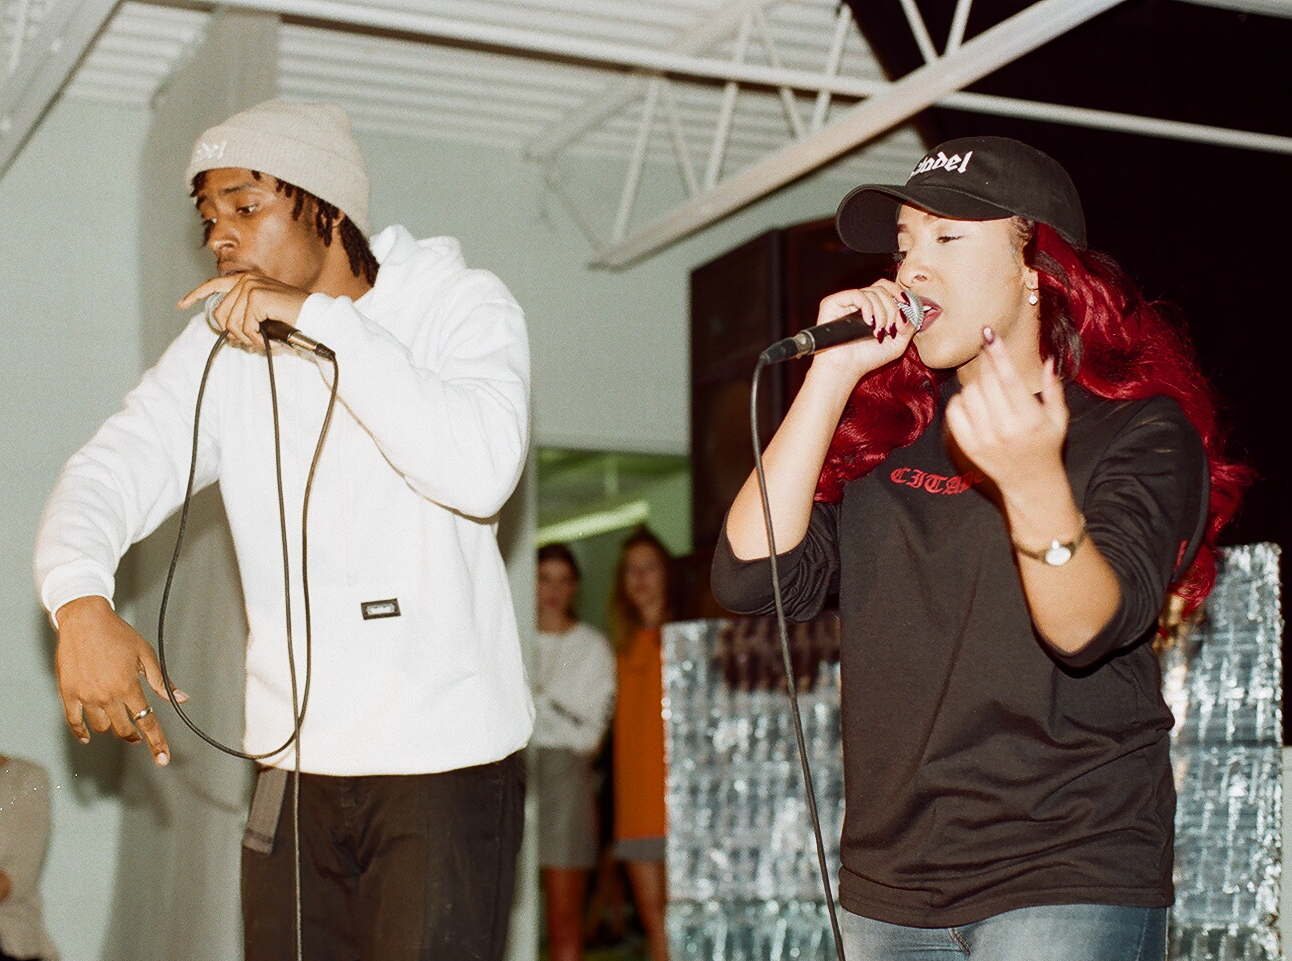 12. Yohan Black and Mikayla States at Halifax Pop Explosion in Citadel Clothing Fall Winter 2016 Collection